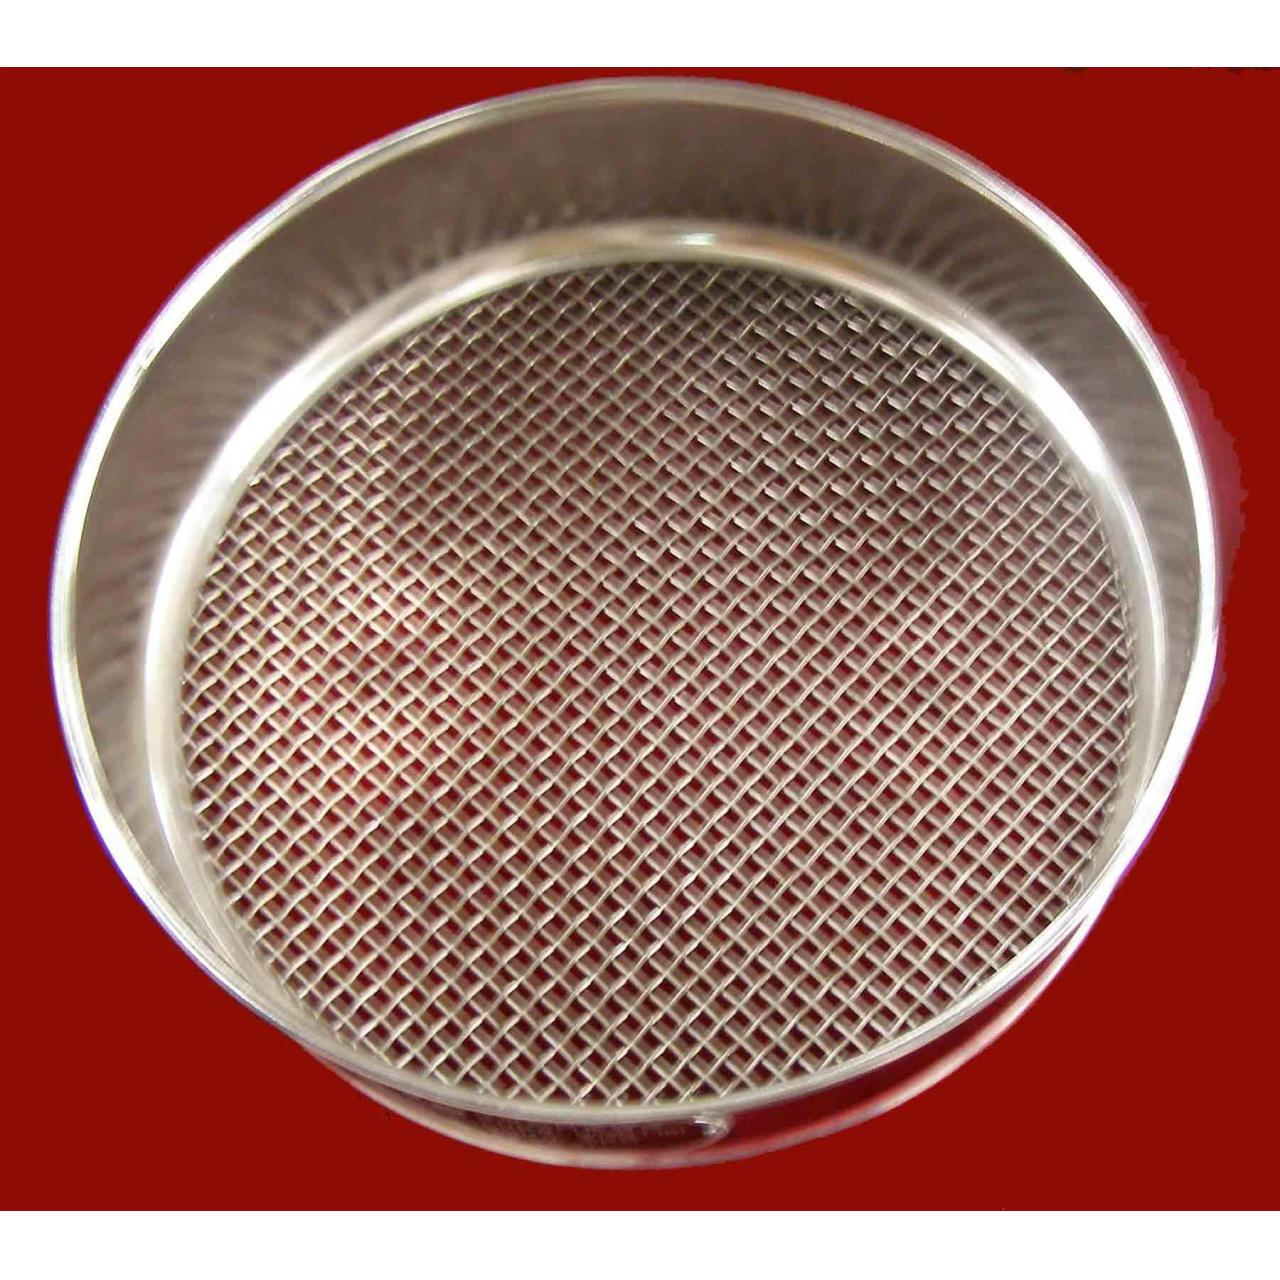 Wholesale fine stainless steel wire test sieve test sieve from china suppliers